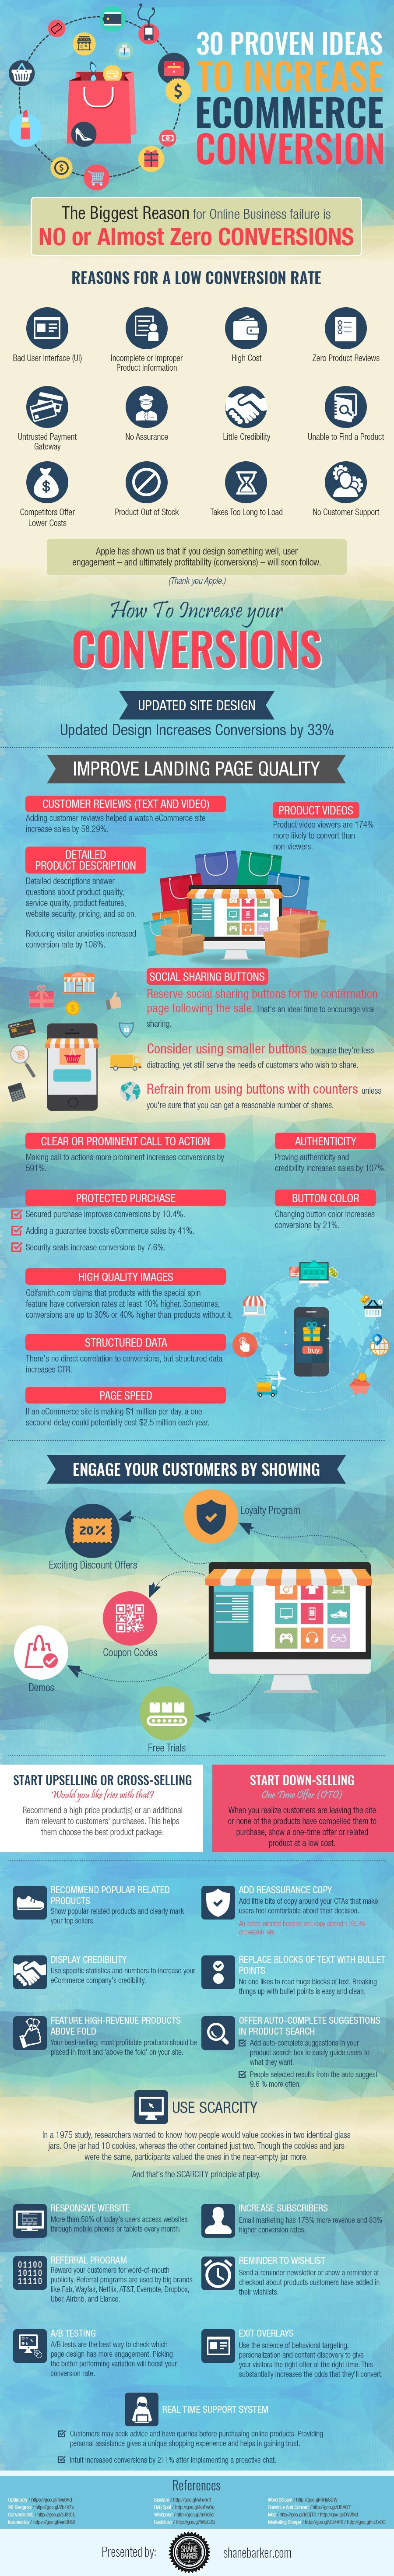 ecommerce-conversion-infographic-2.jpeg